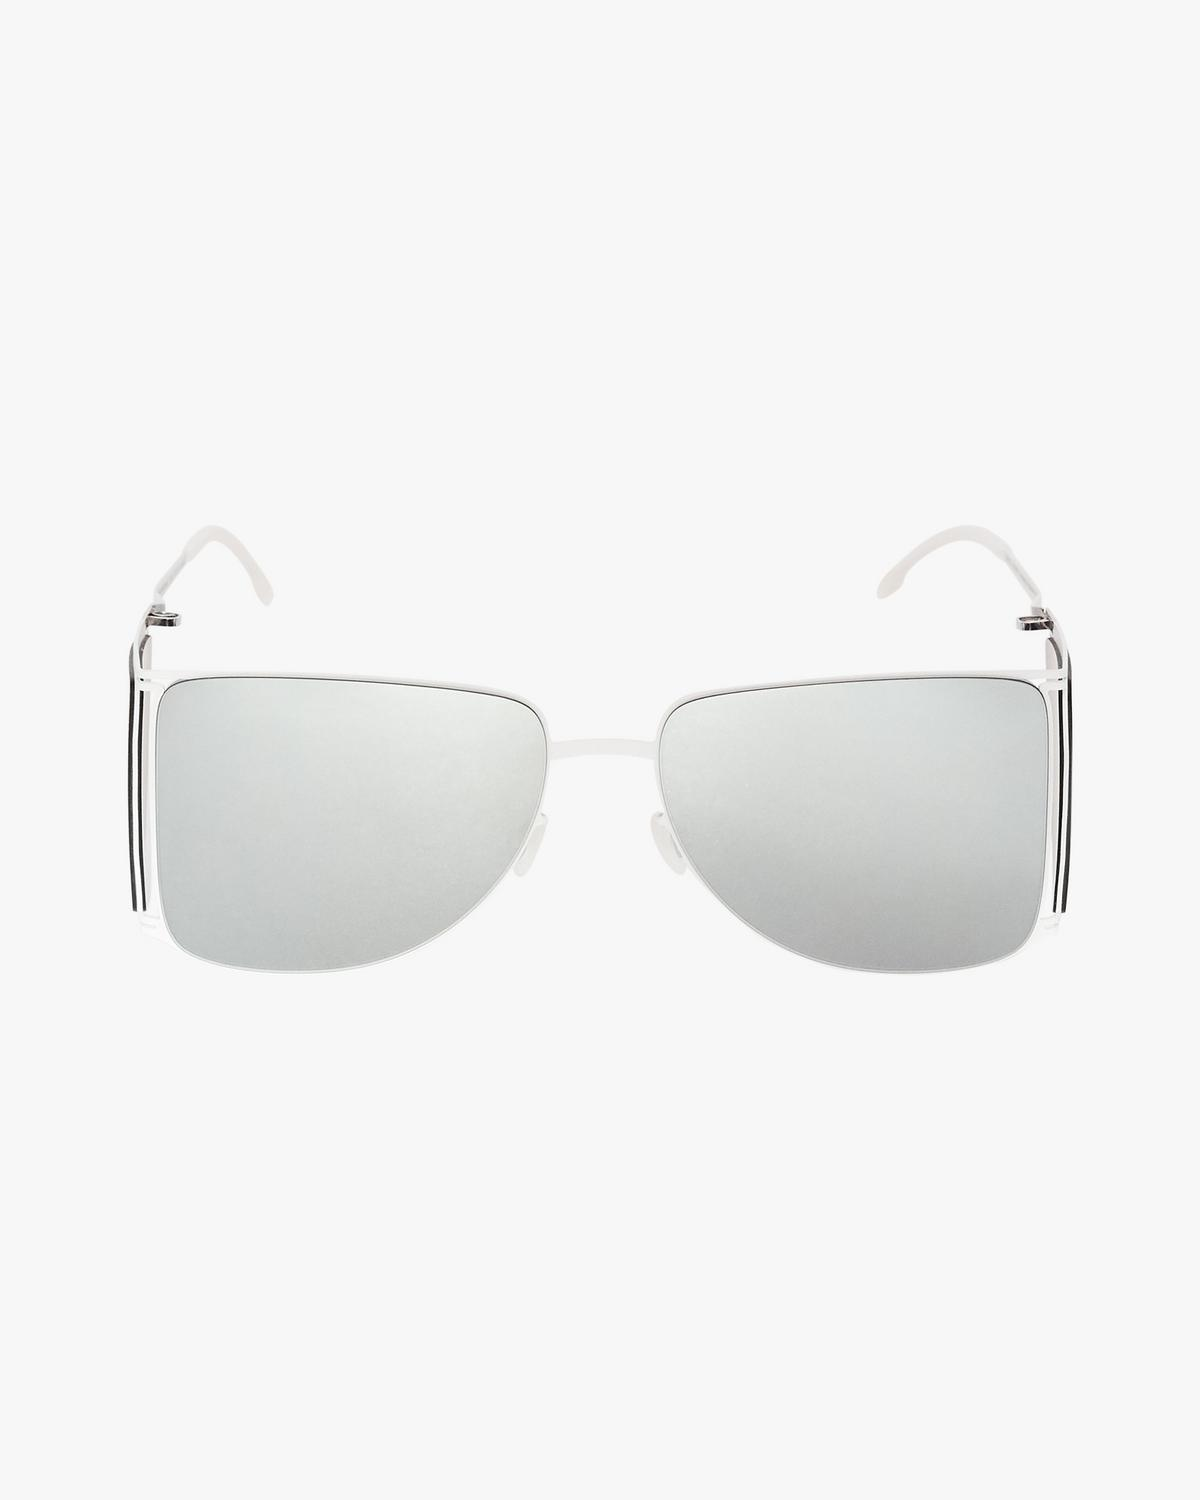 Mykita and Helmut Lang HL002 Sunglasses